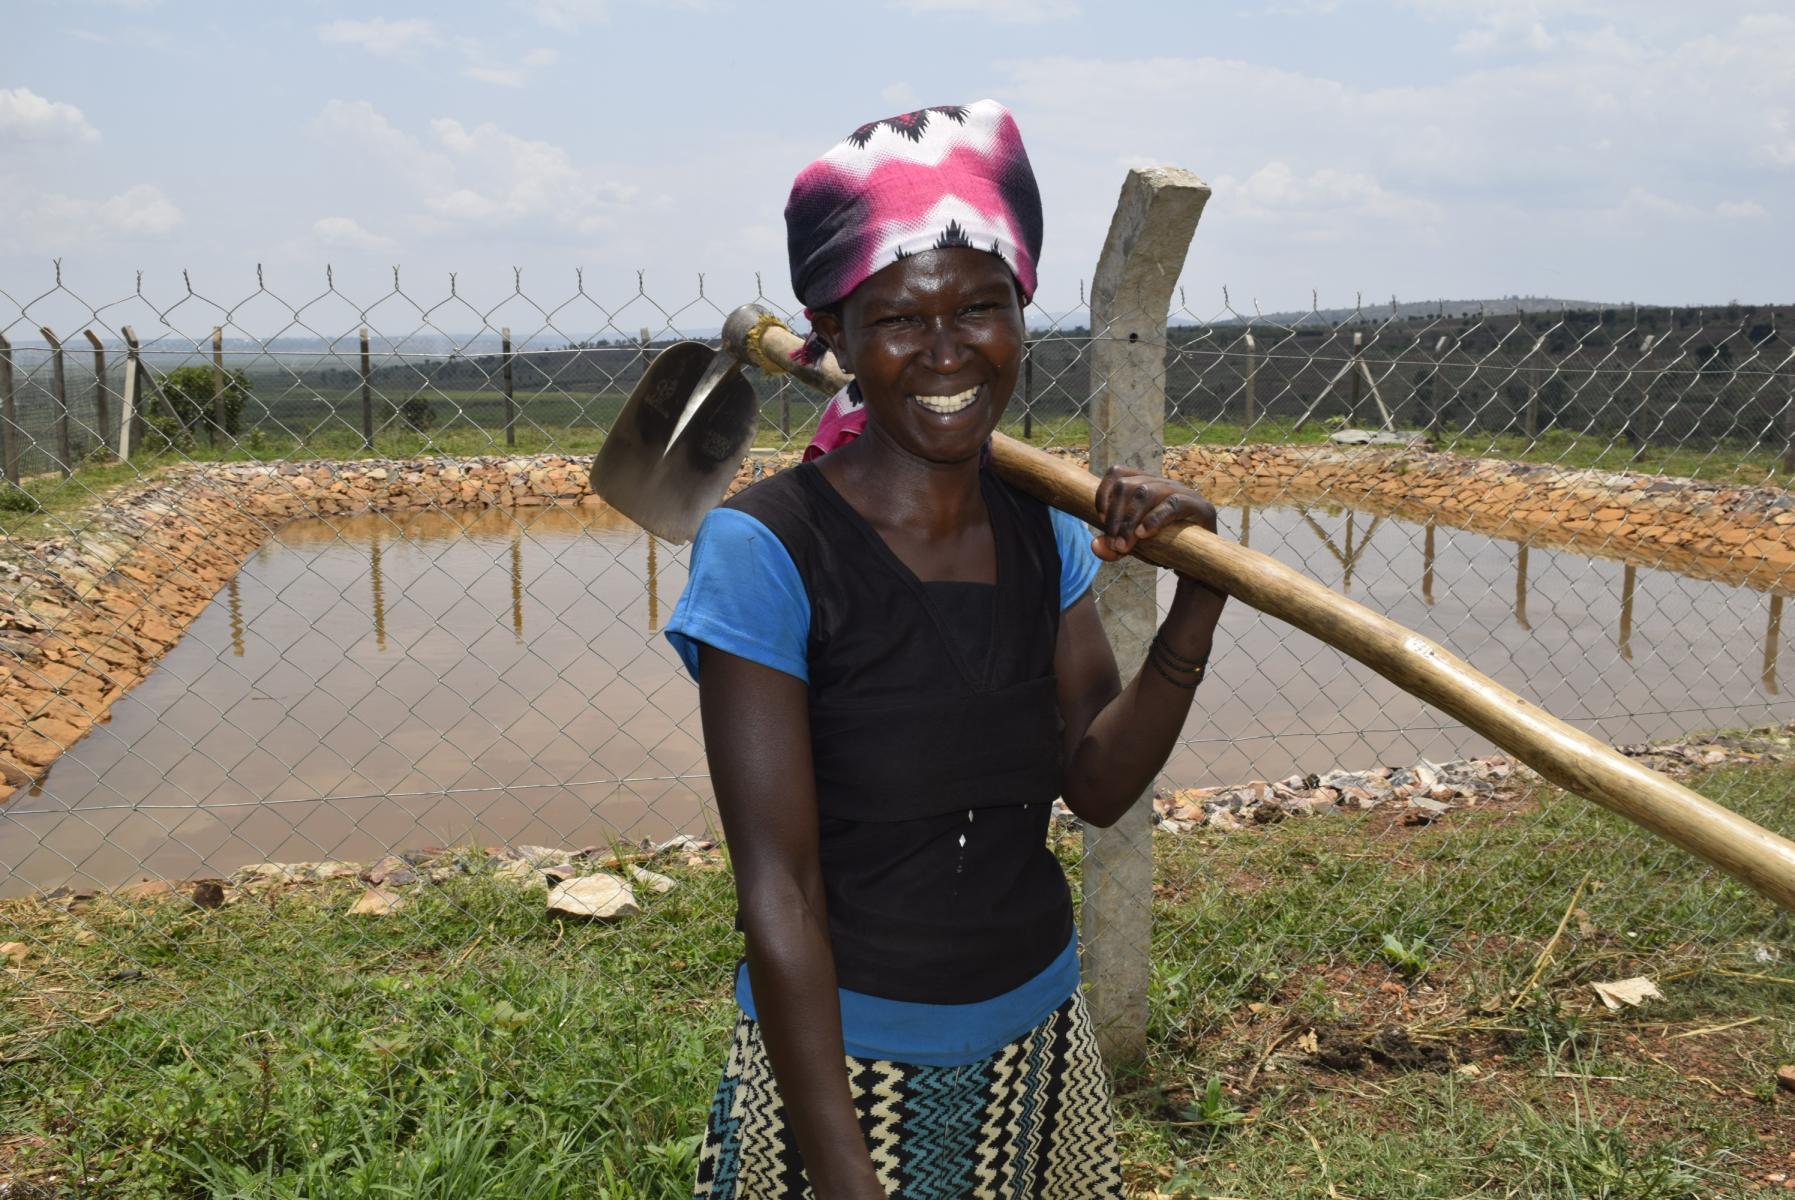 A woman holding a hoe stands in front of a fenced-in pond, smiling at the camera.